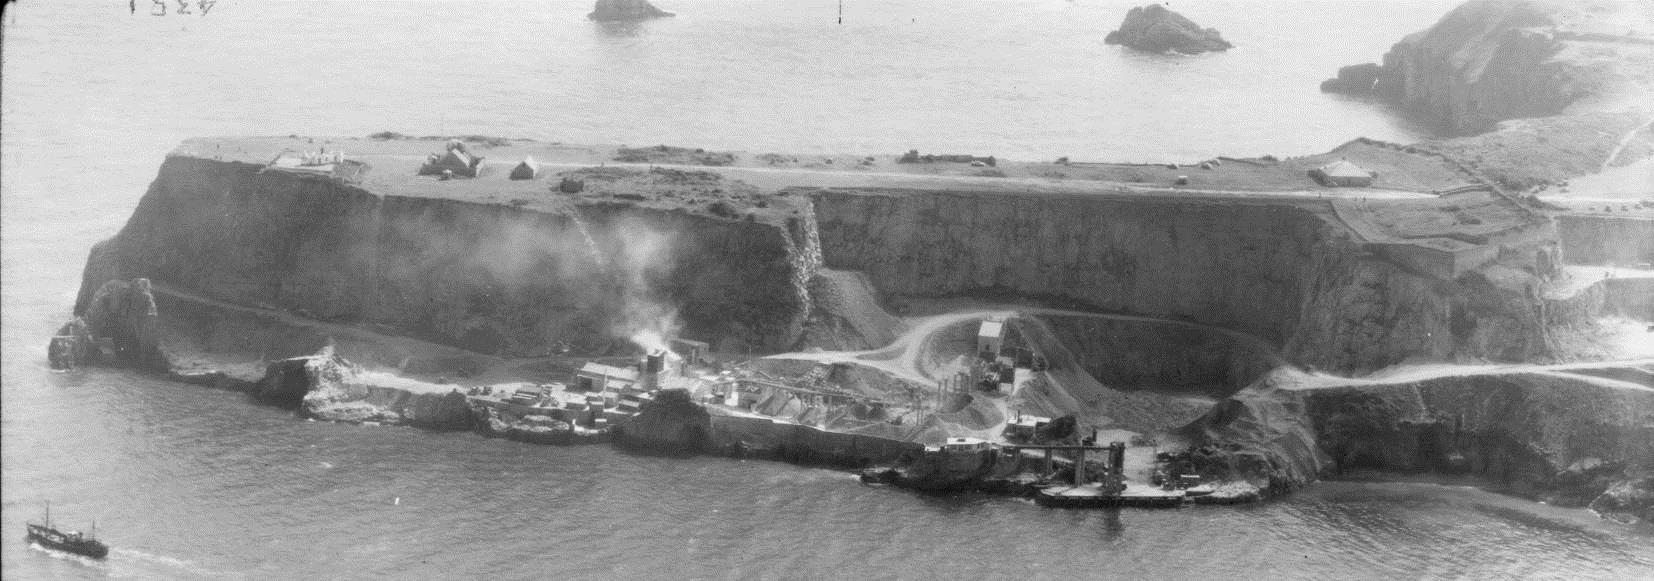 Quarrying at Berry Head Fort Number 3. NMR SX9456/39 RAF 30137/PSFO-P2-0034 27-AUG-1958.